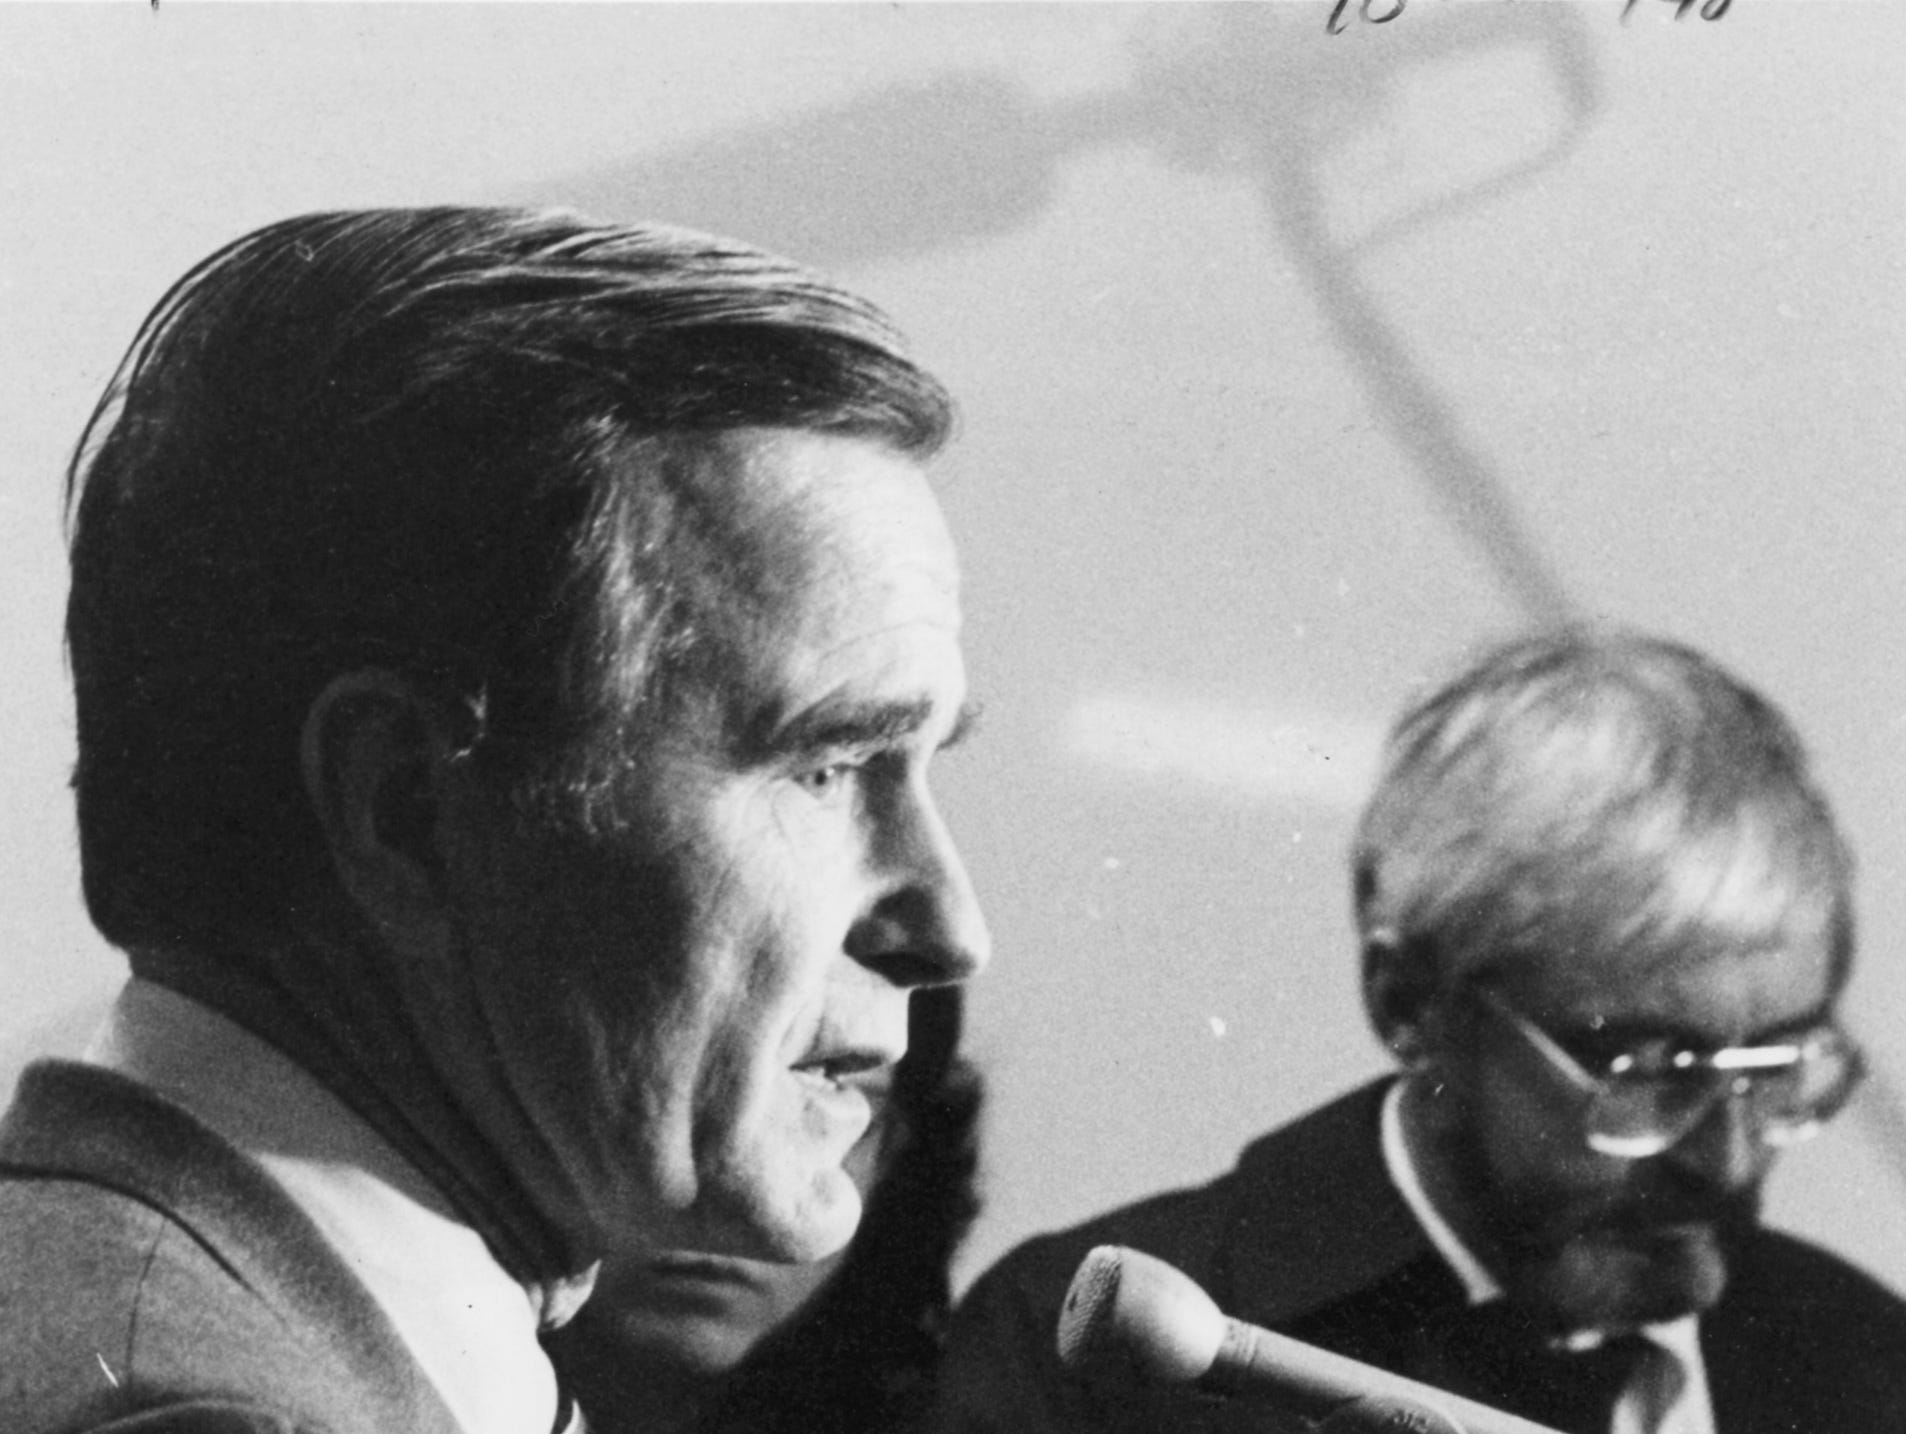 Oct. 25, 1980. Republican vice presidential candidate George H. W. Bush at a Town of Grand Chute restaurant. Post-Crescent photo.